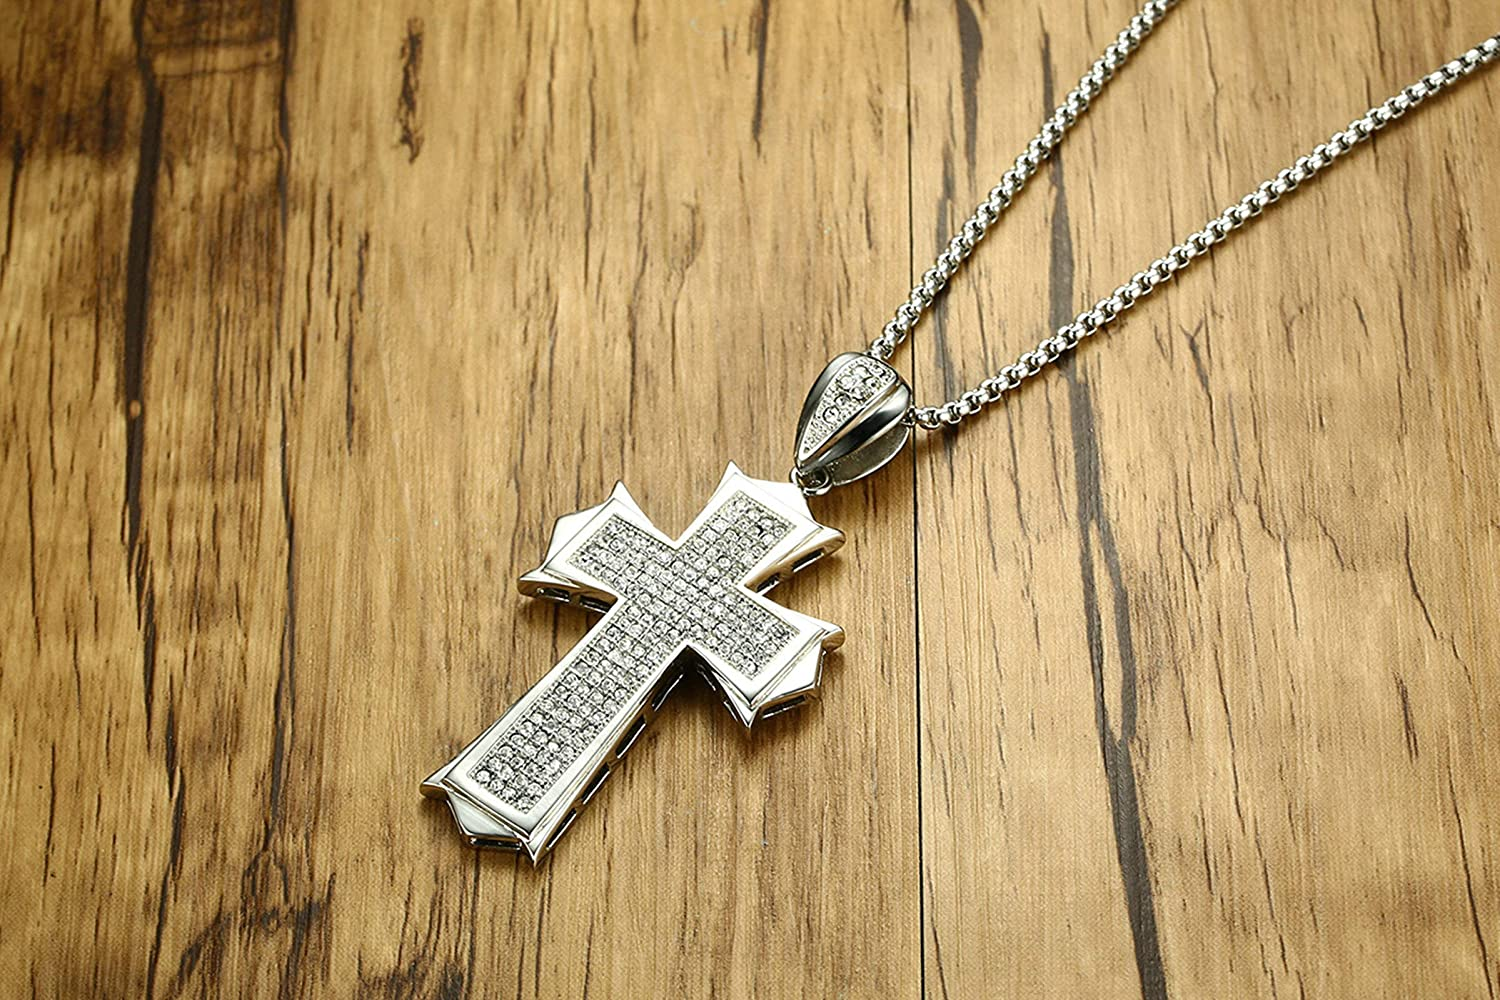 Aooaz Jewelry Stainless Steel Wide Cross with Cubic Zirconia Necklace Pendant Necklace Silver